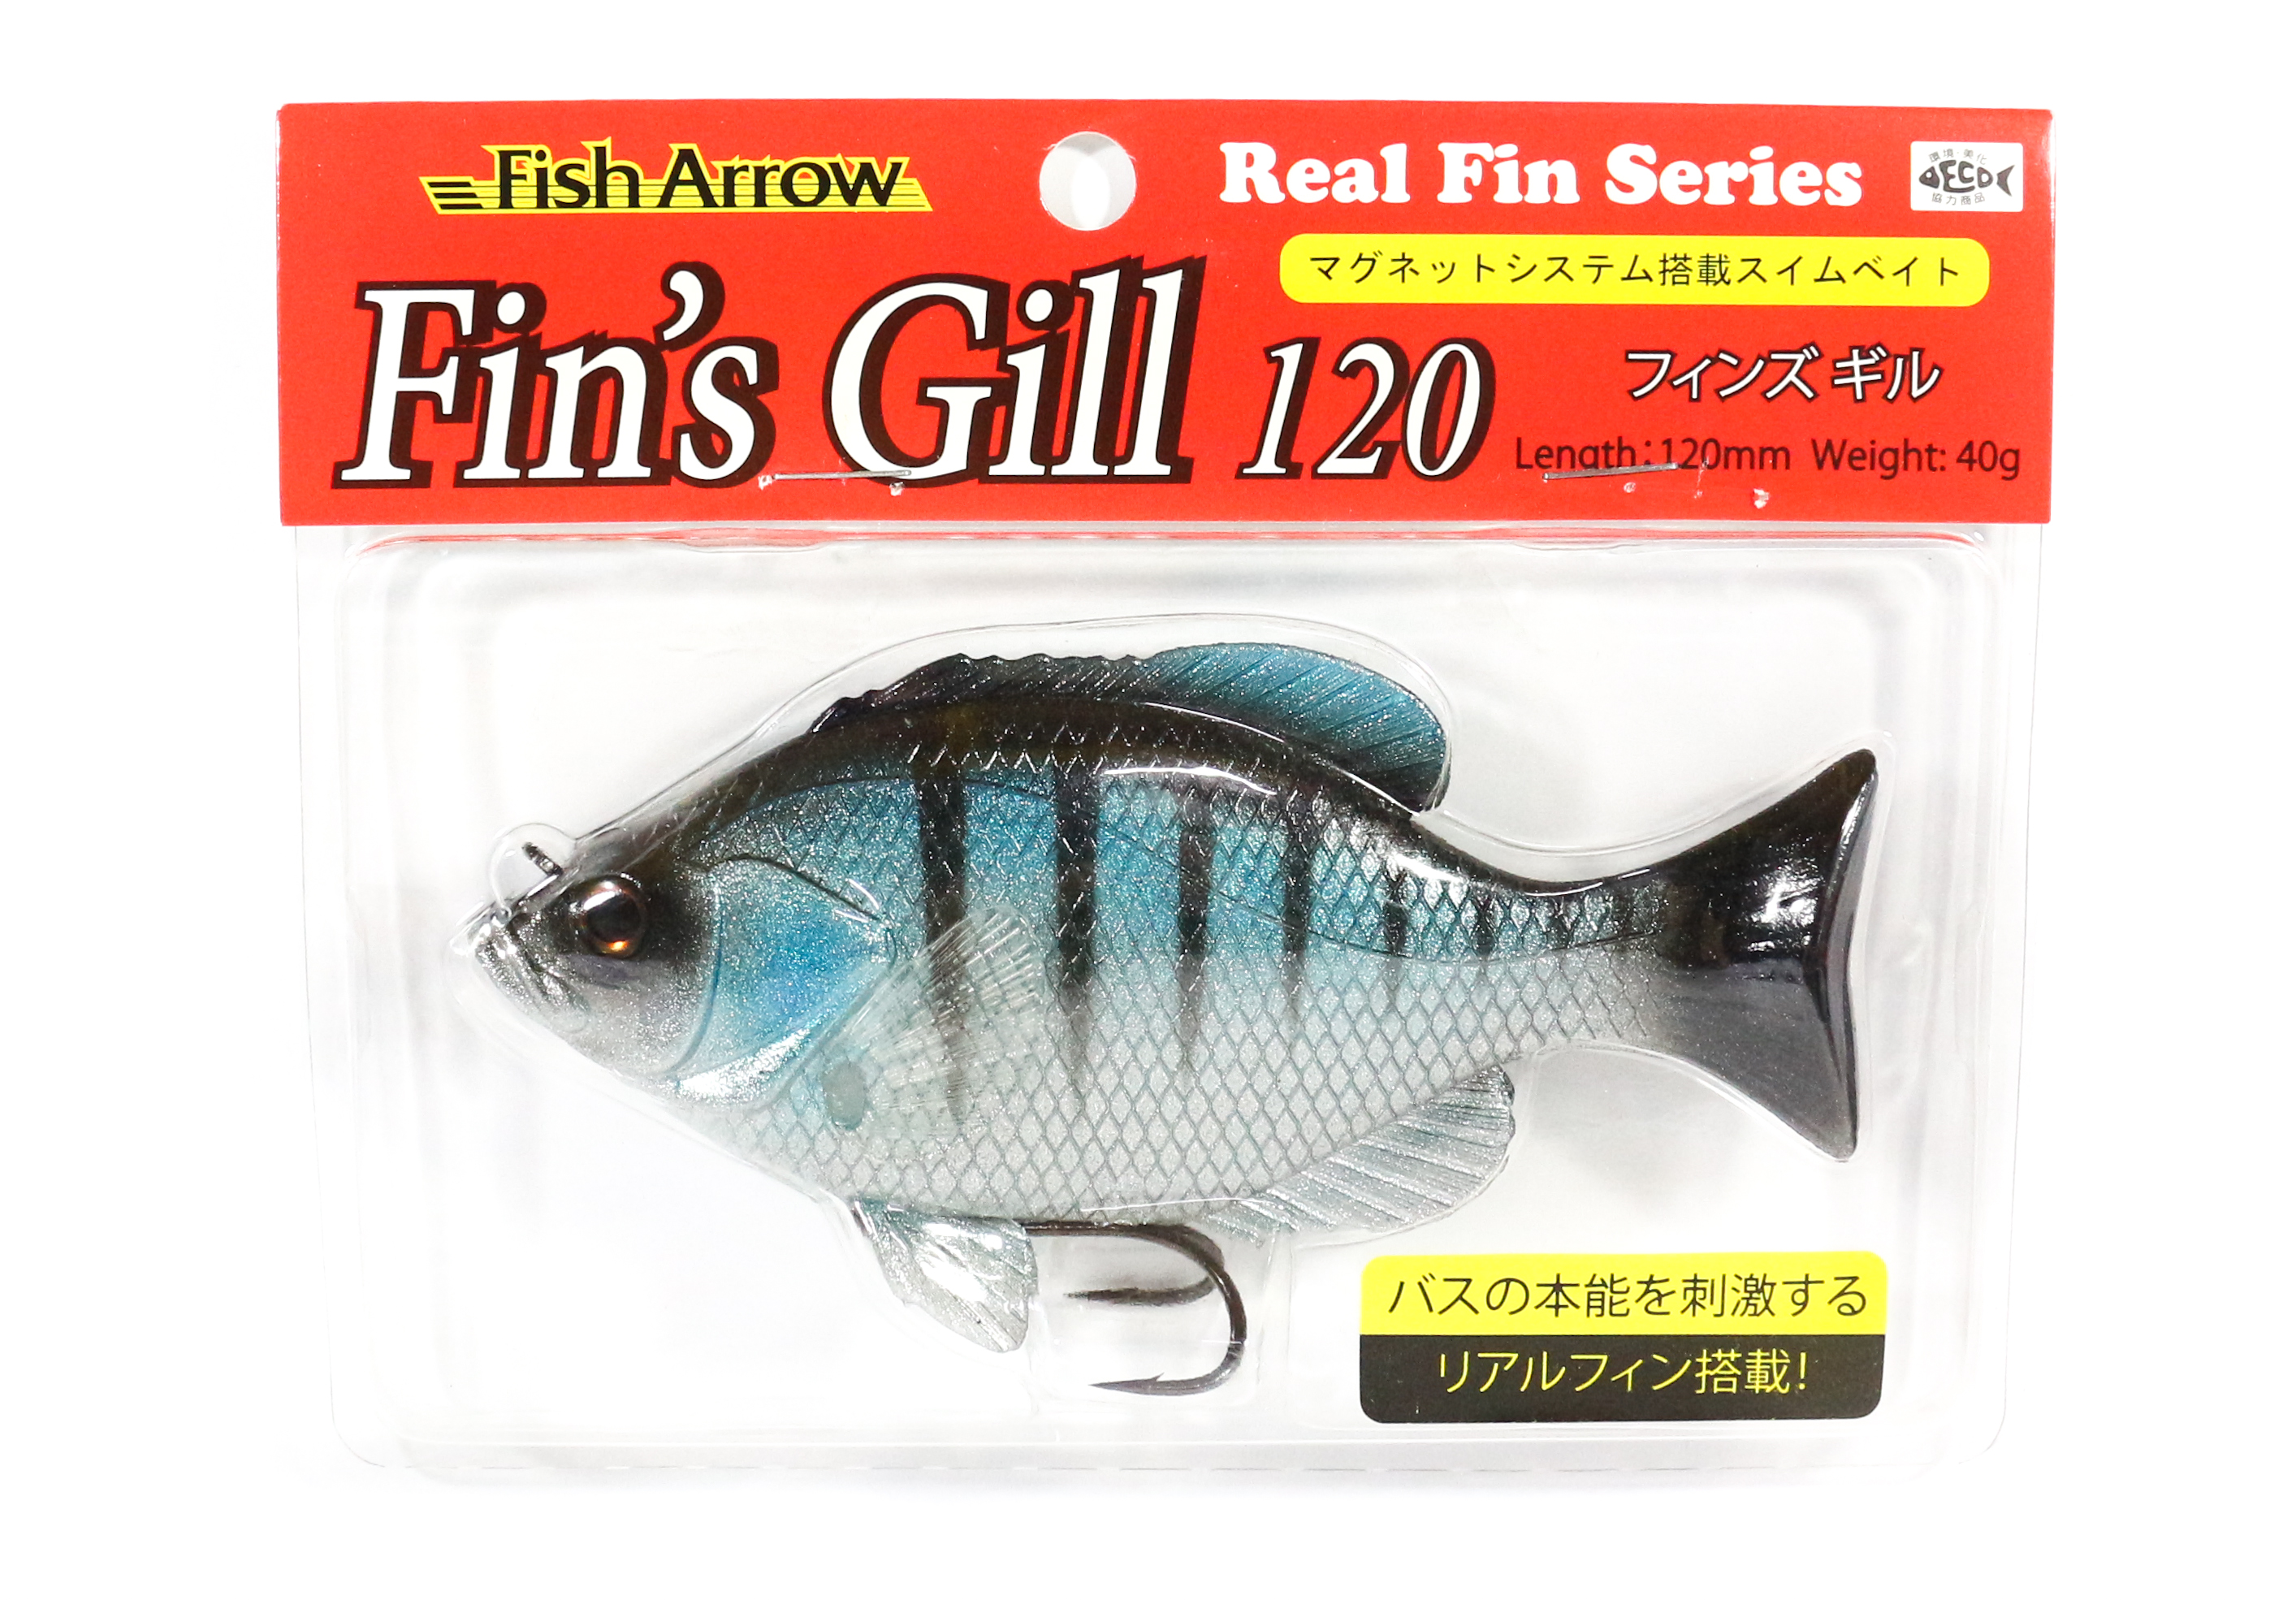 Fish Arrow Soft Lure Fin's Gill 120 40 gram 120 mm Sinking Lure #04 (8511)